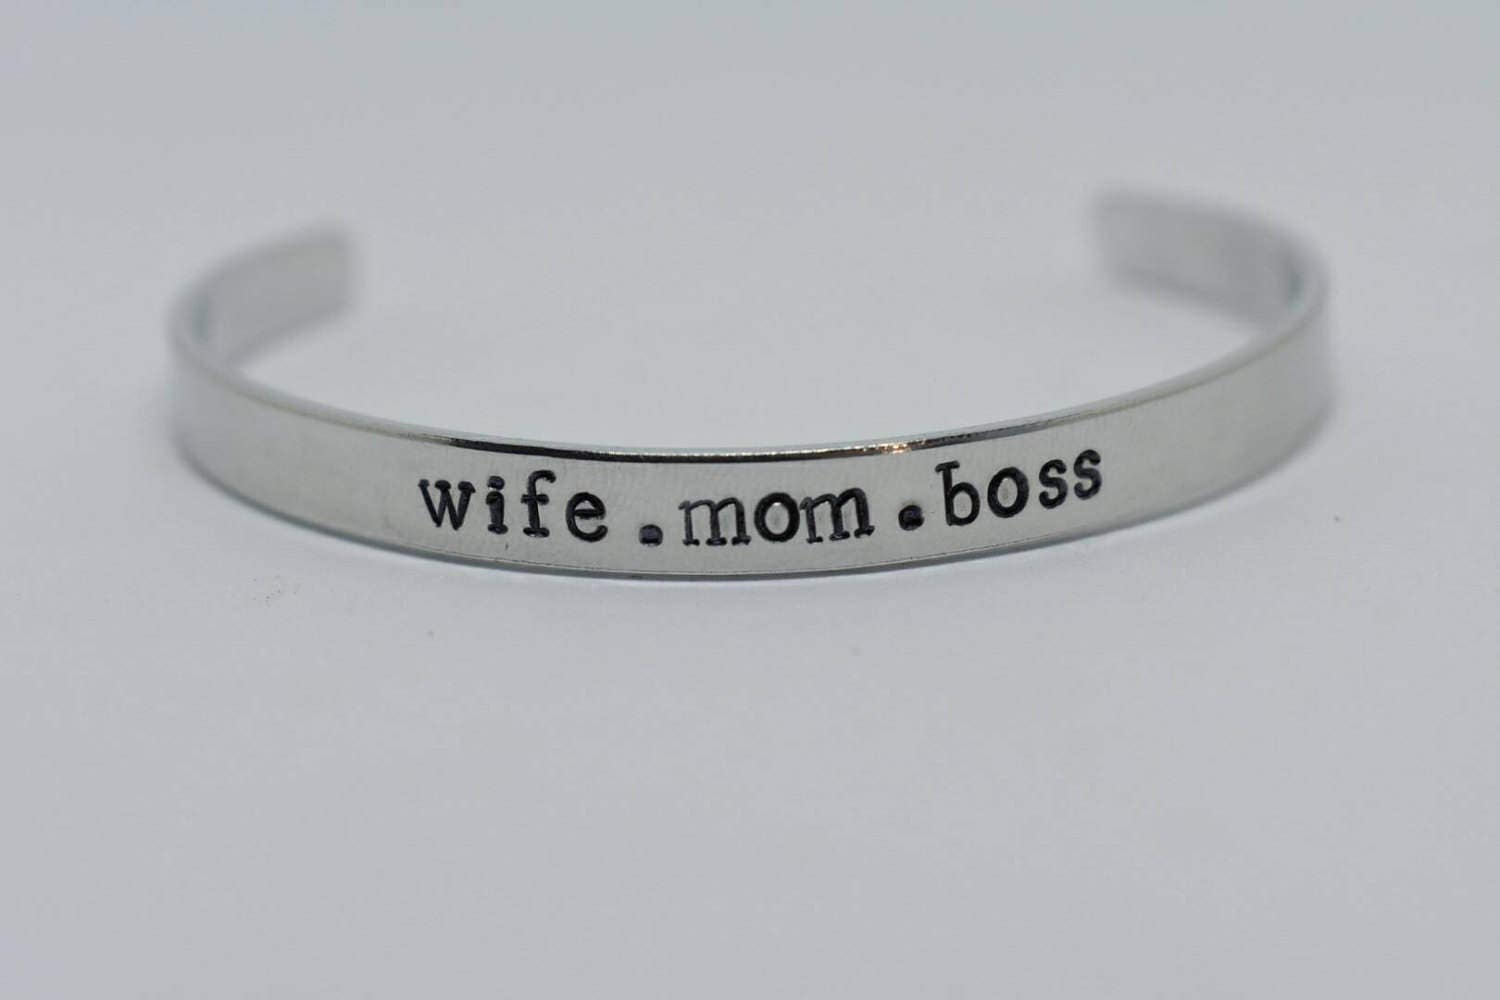 6f1e75bc09637 Hand Stamped Cuff Bracelet wife.mom.boss *Personalized Bracelet ...